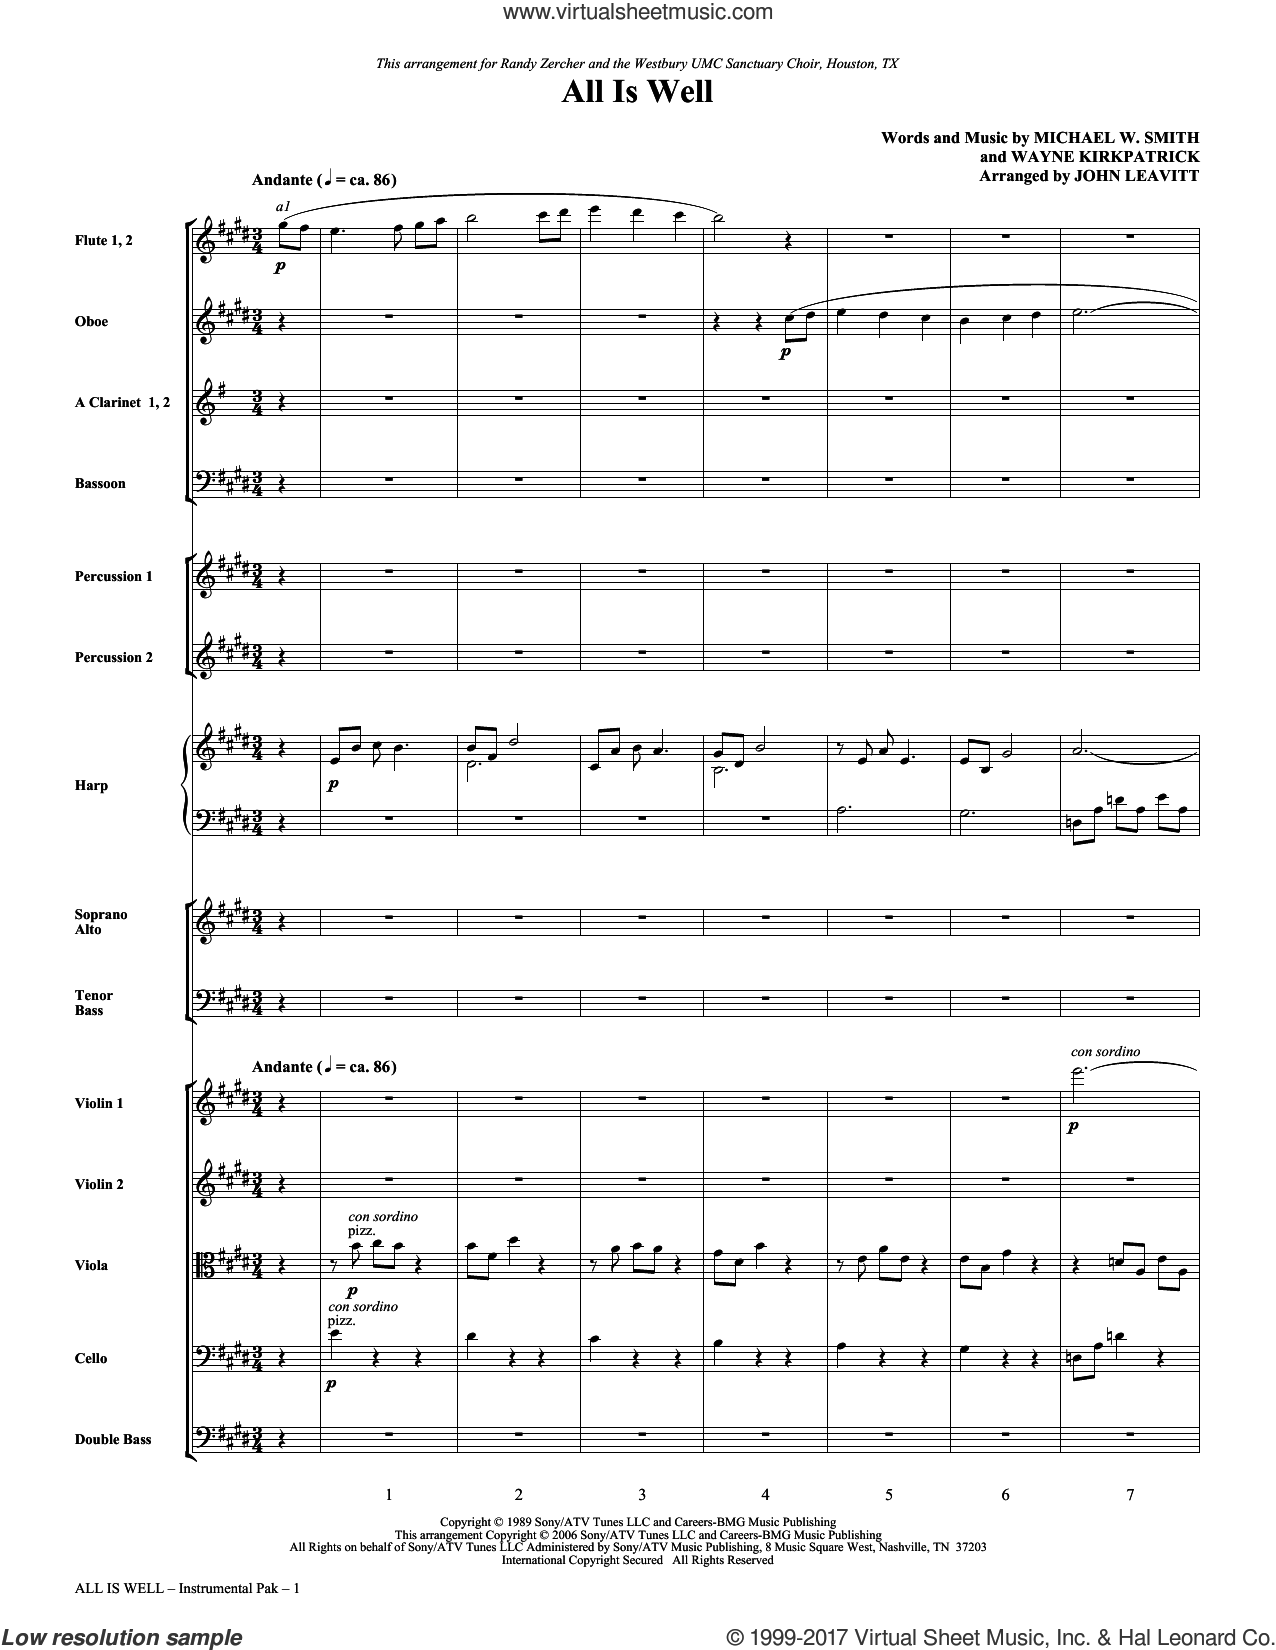 All Is Well (complete set of parts) sheet music for orchestra/band (chamber ensemble) by John Leavitt, Michael W. Smith and Wayne Kirkpatrick, intermediate skill level